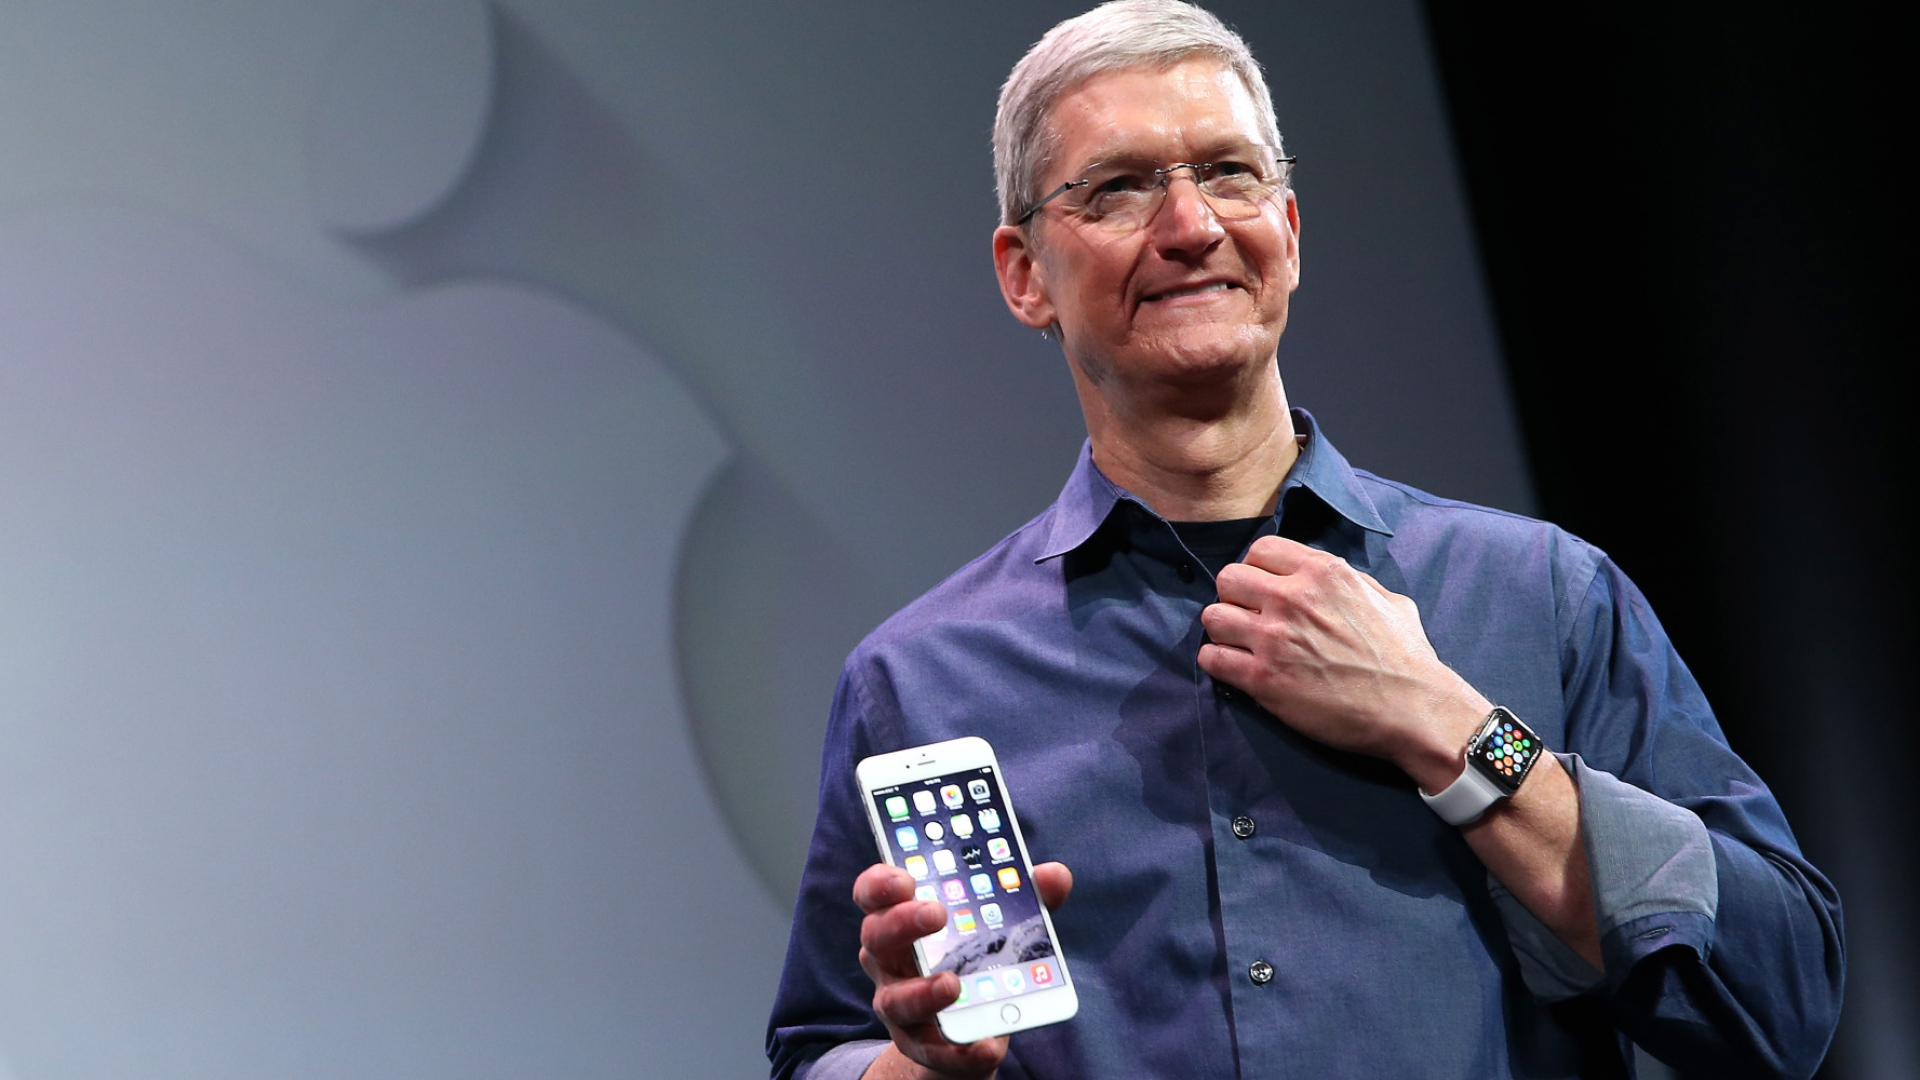 Tim Cook iPhone Apple Watch o futuro é mac